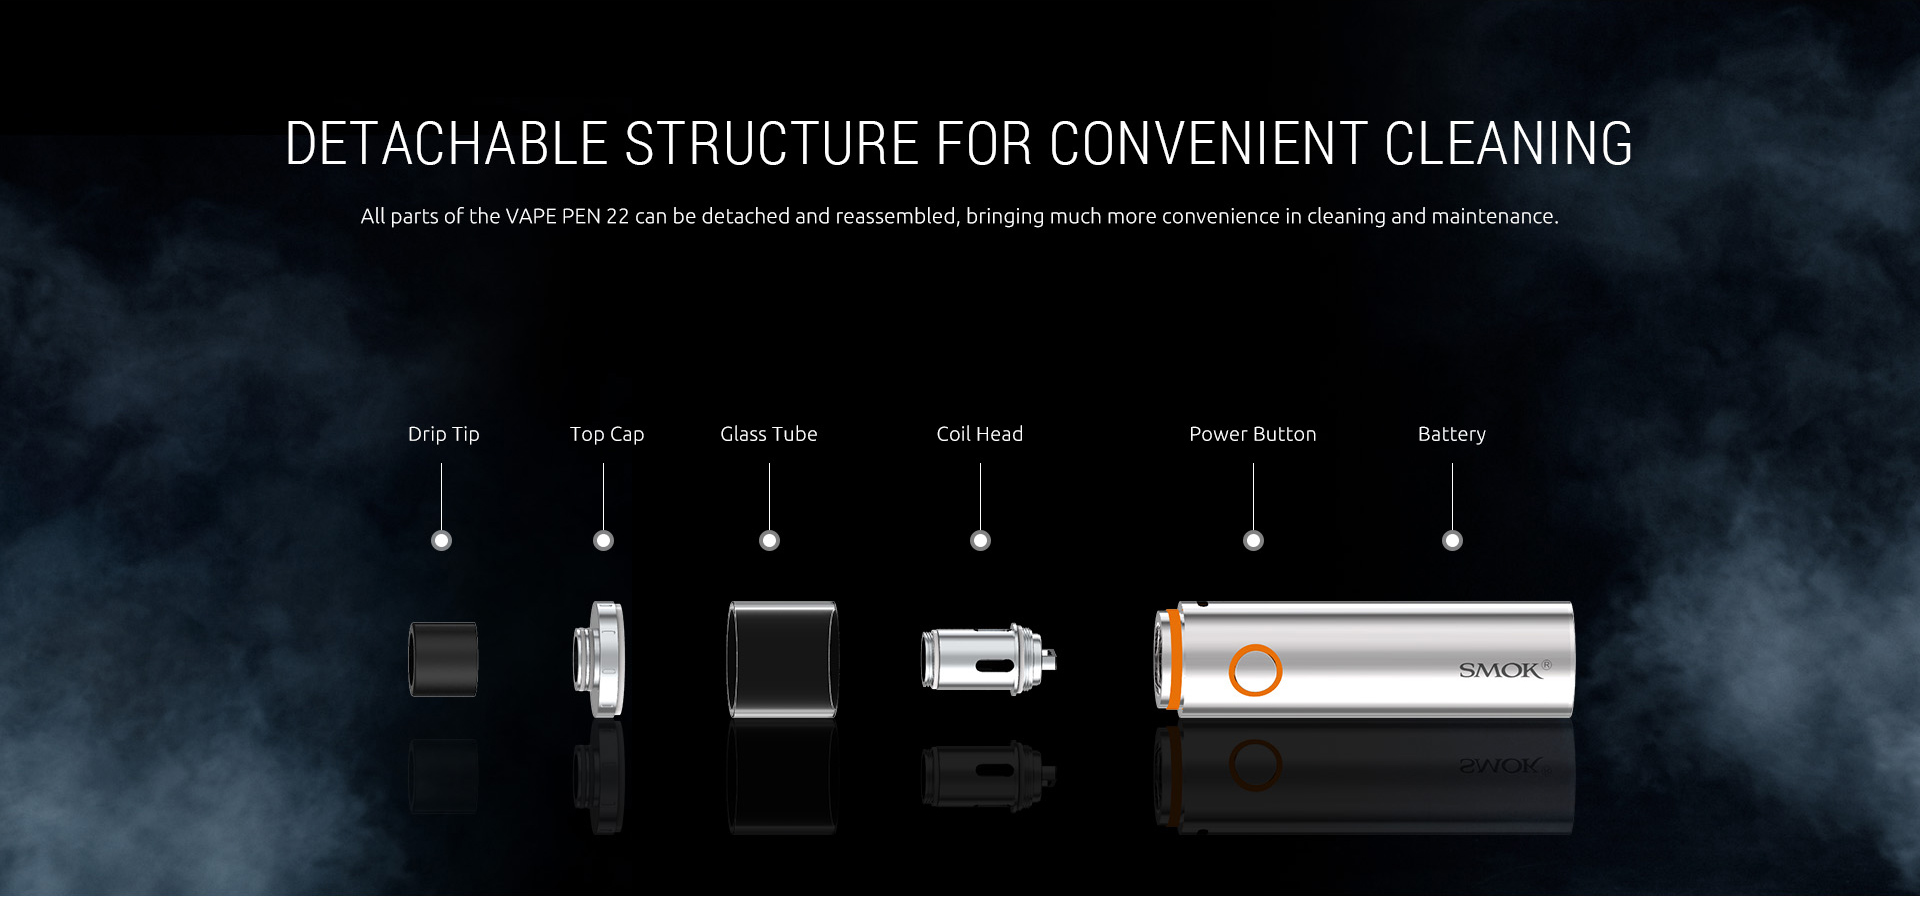 The Detachable Structure of SMOK Vape Pen 22 Kit for Convenient Cleaning